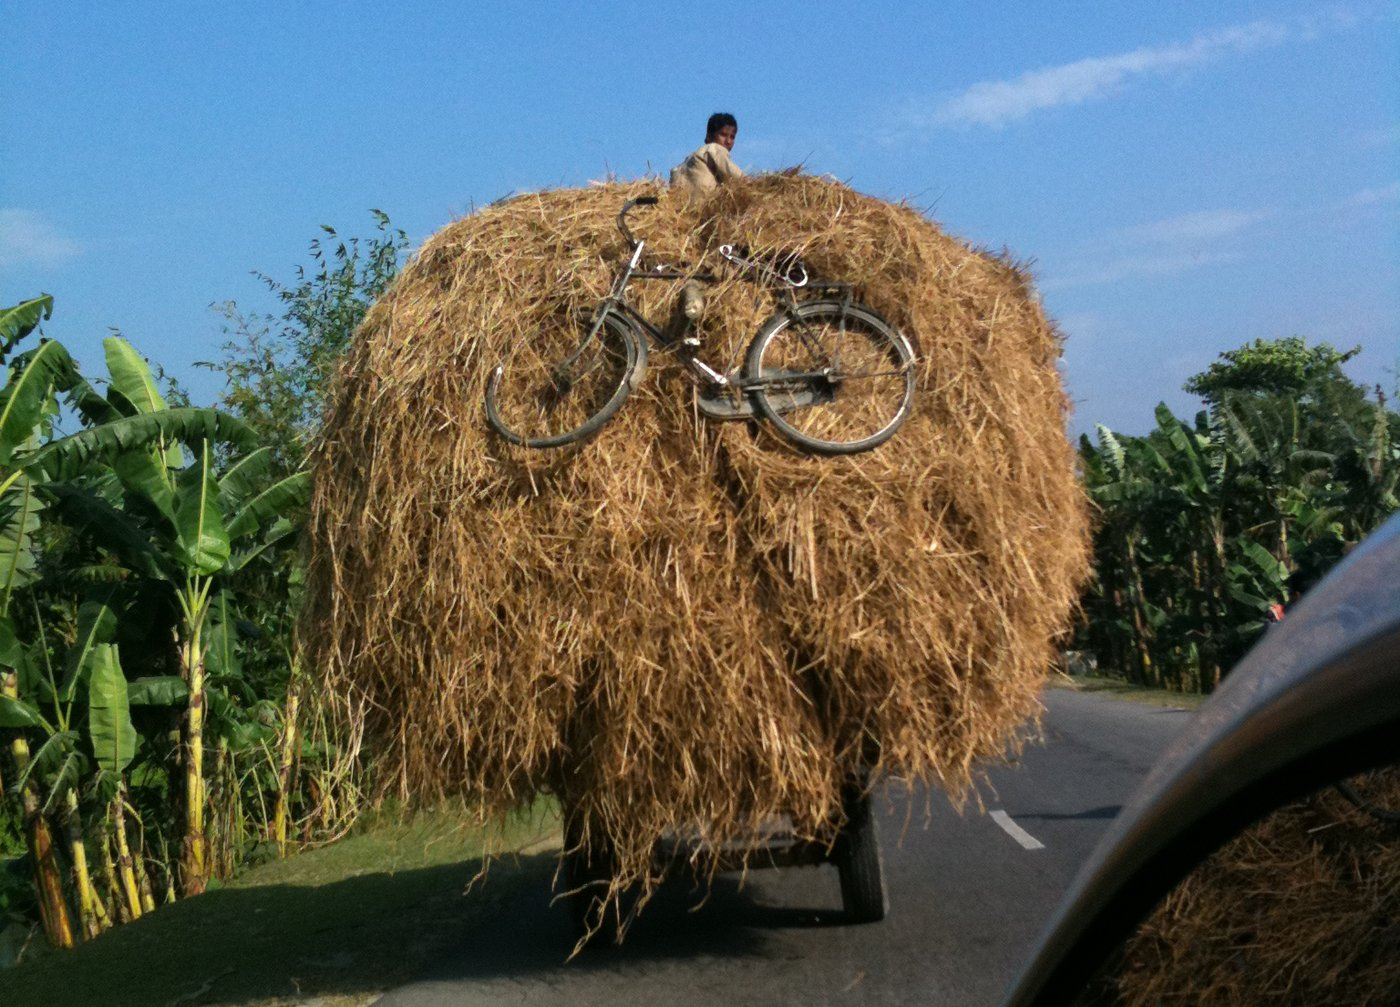 In journeys along rural Indian roads , you sometimes run into the delightfully bizarre